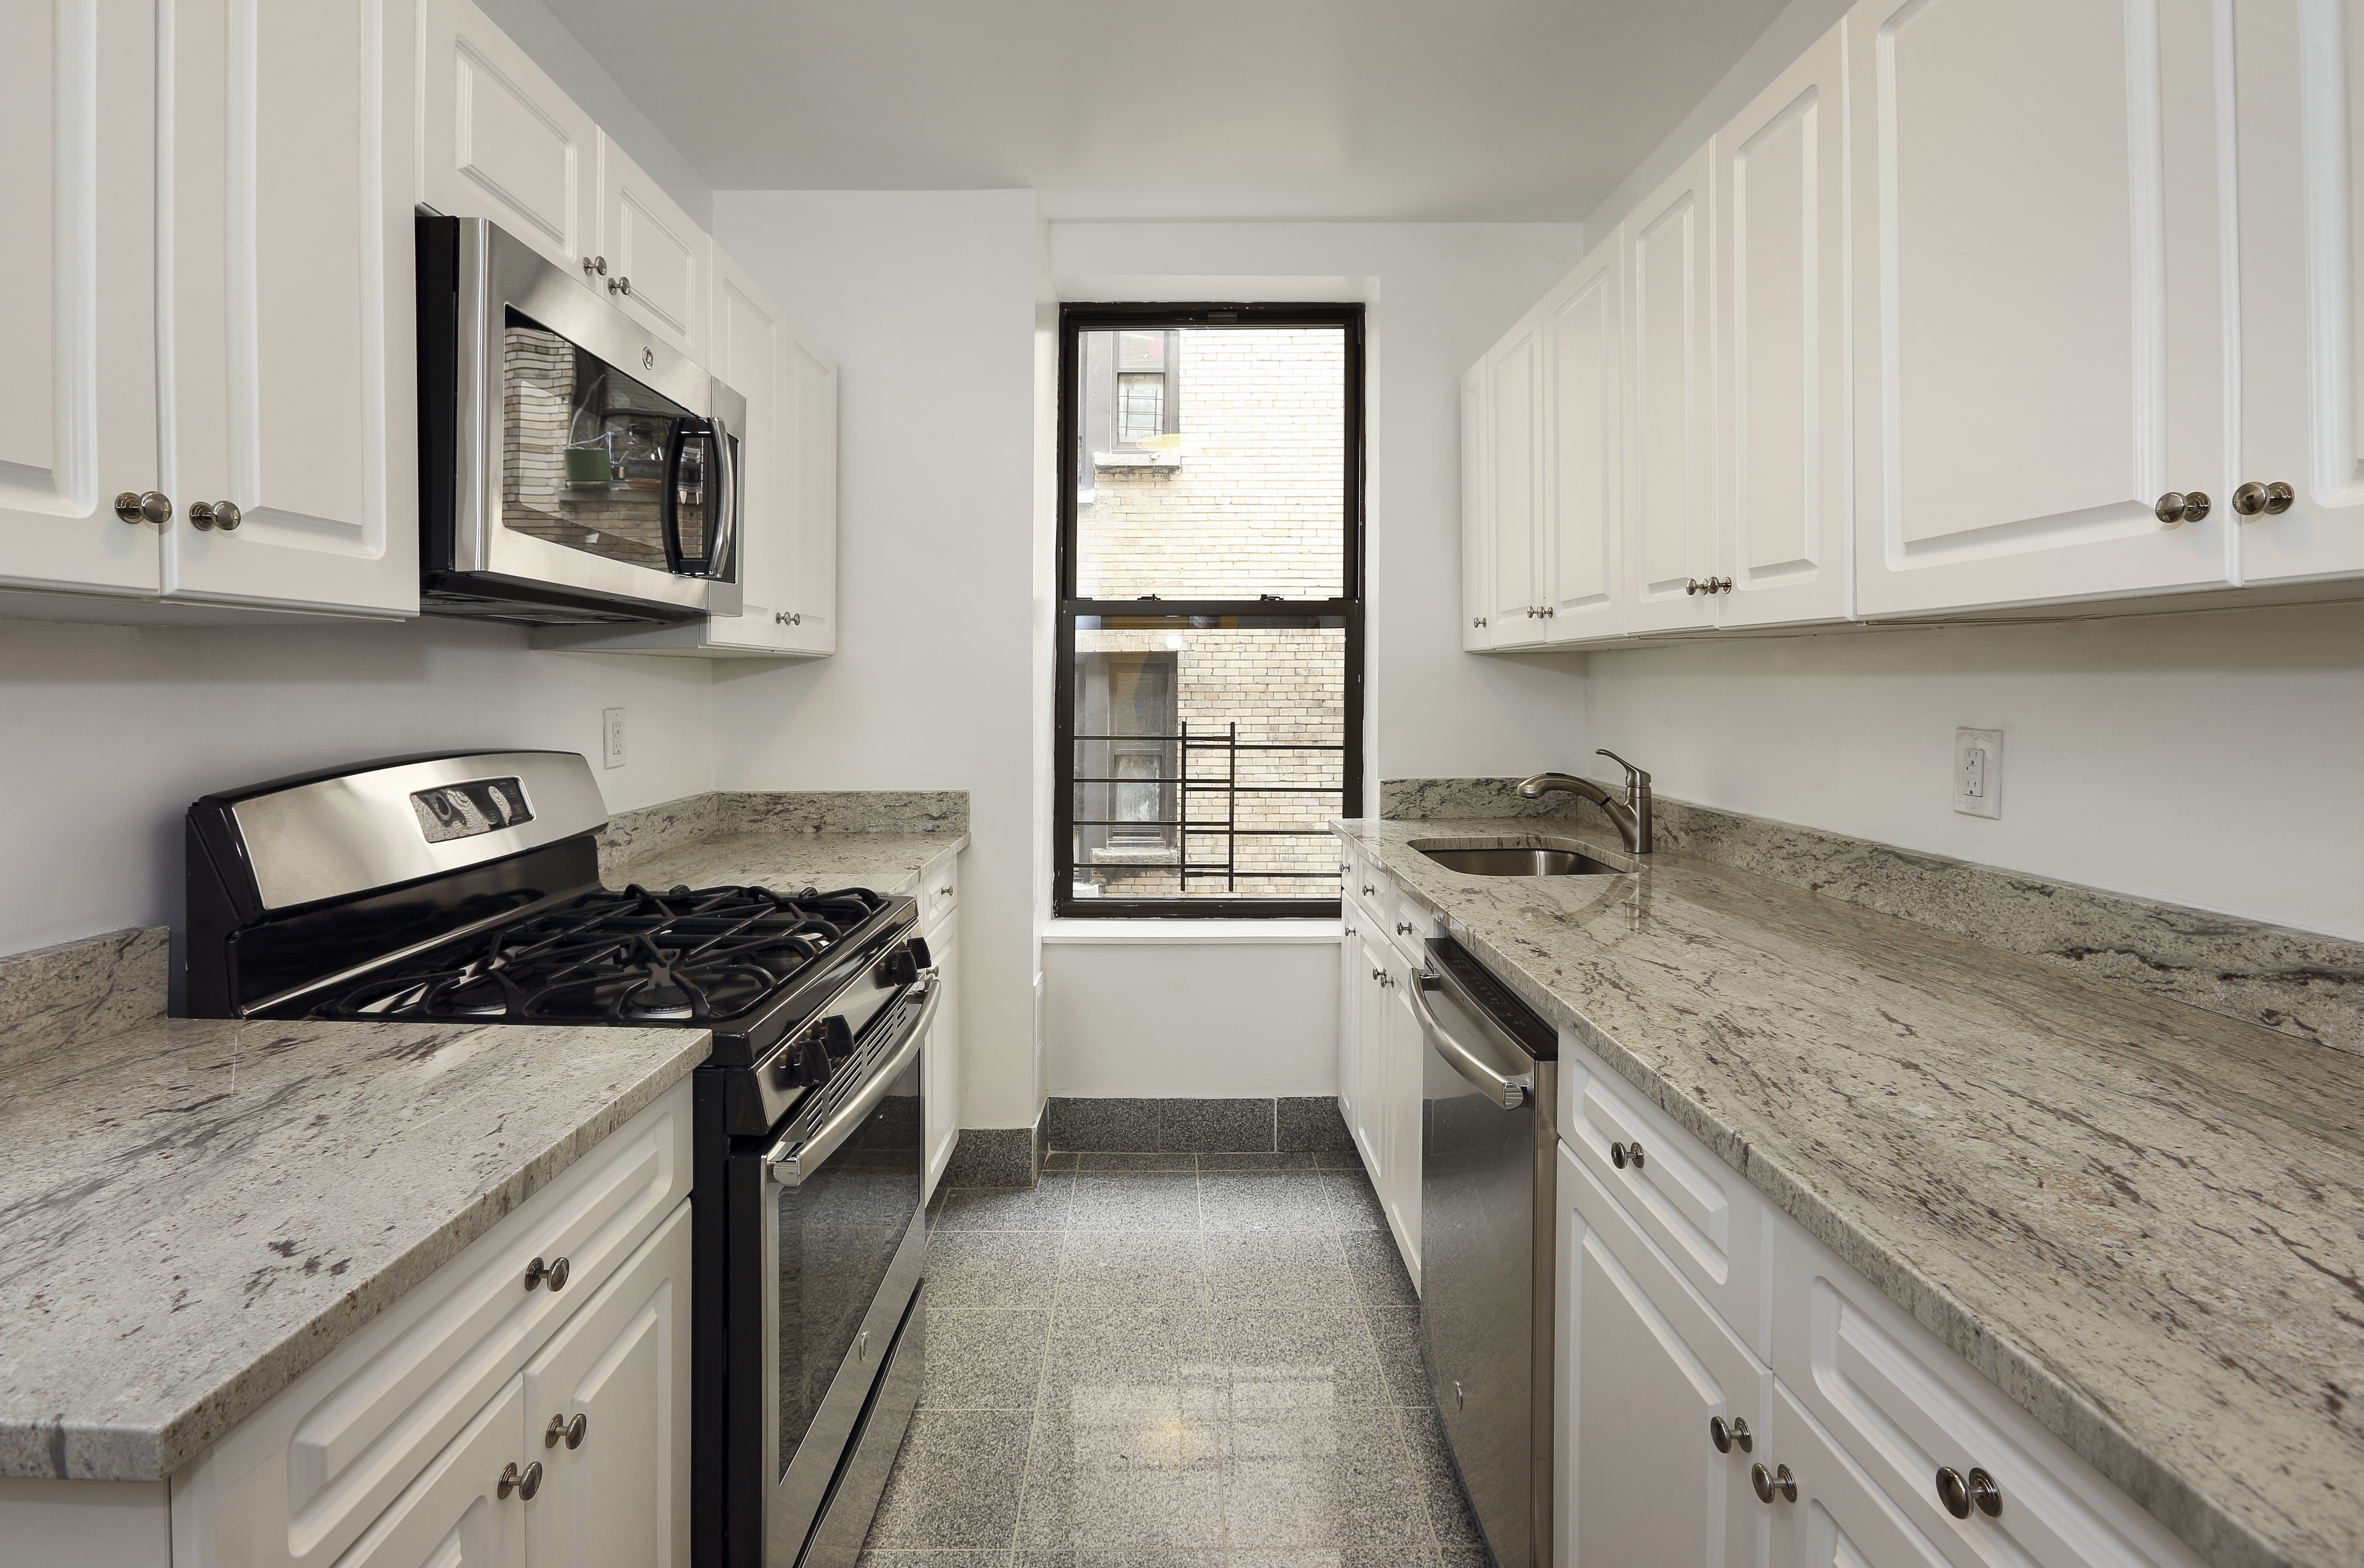 Little Odessa 3 Bedroom Rental At 211 Brighton 15 St Brooklyn Ny 11235 1a 2450 Apartable